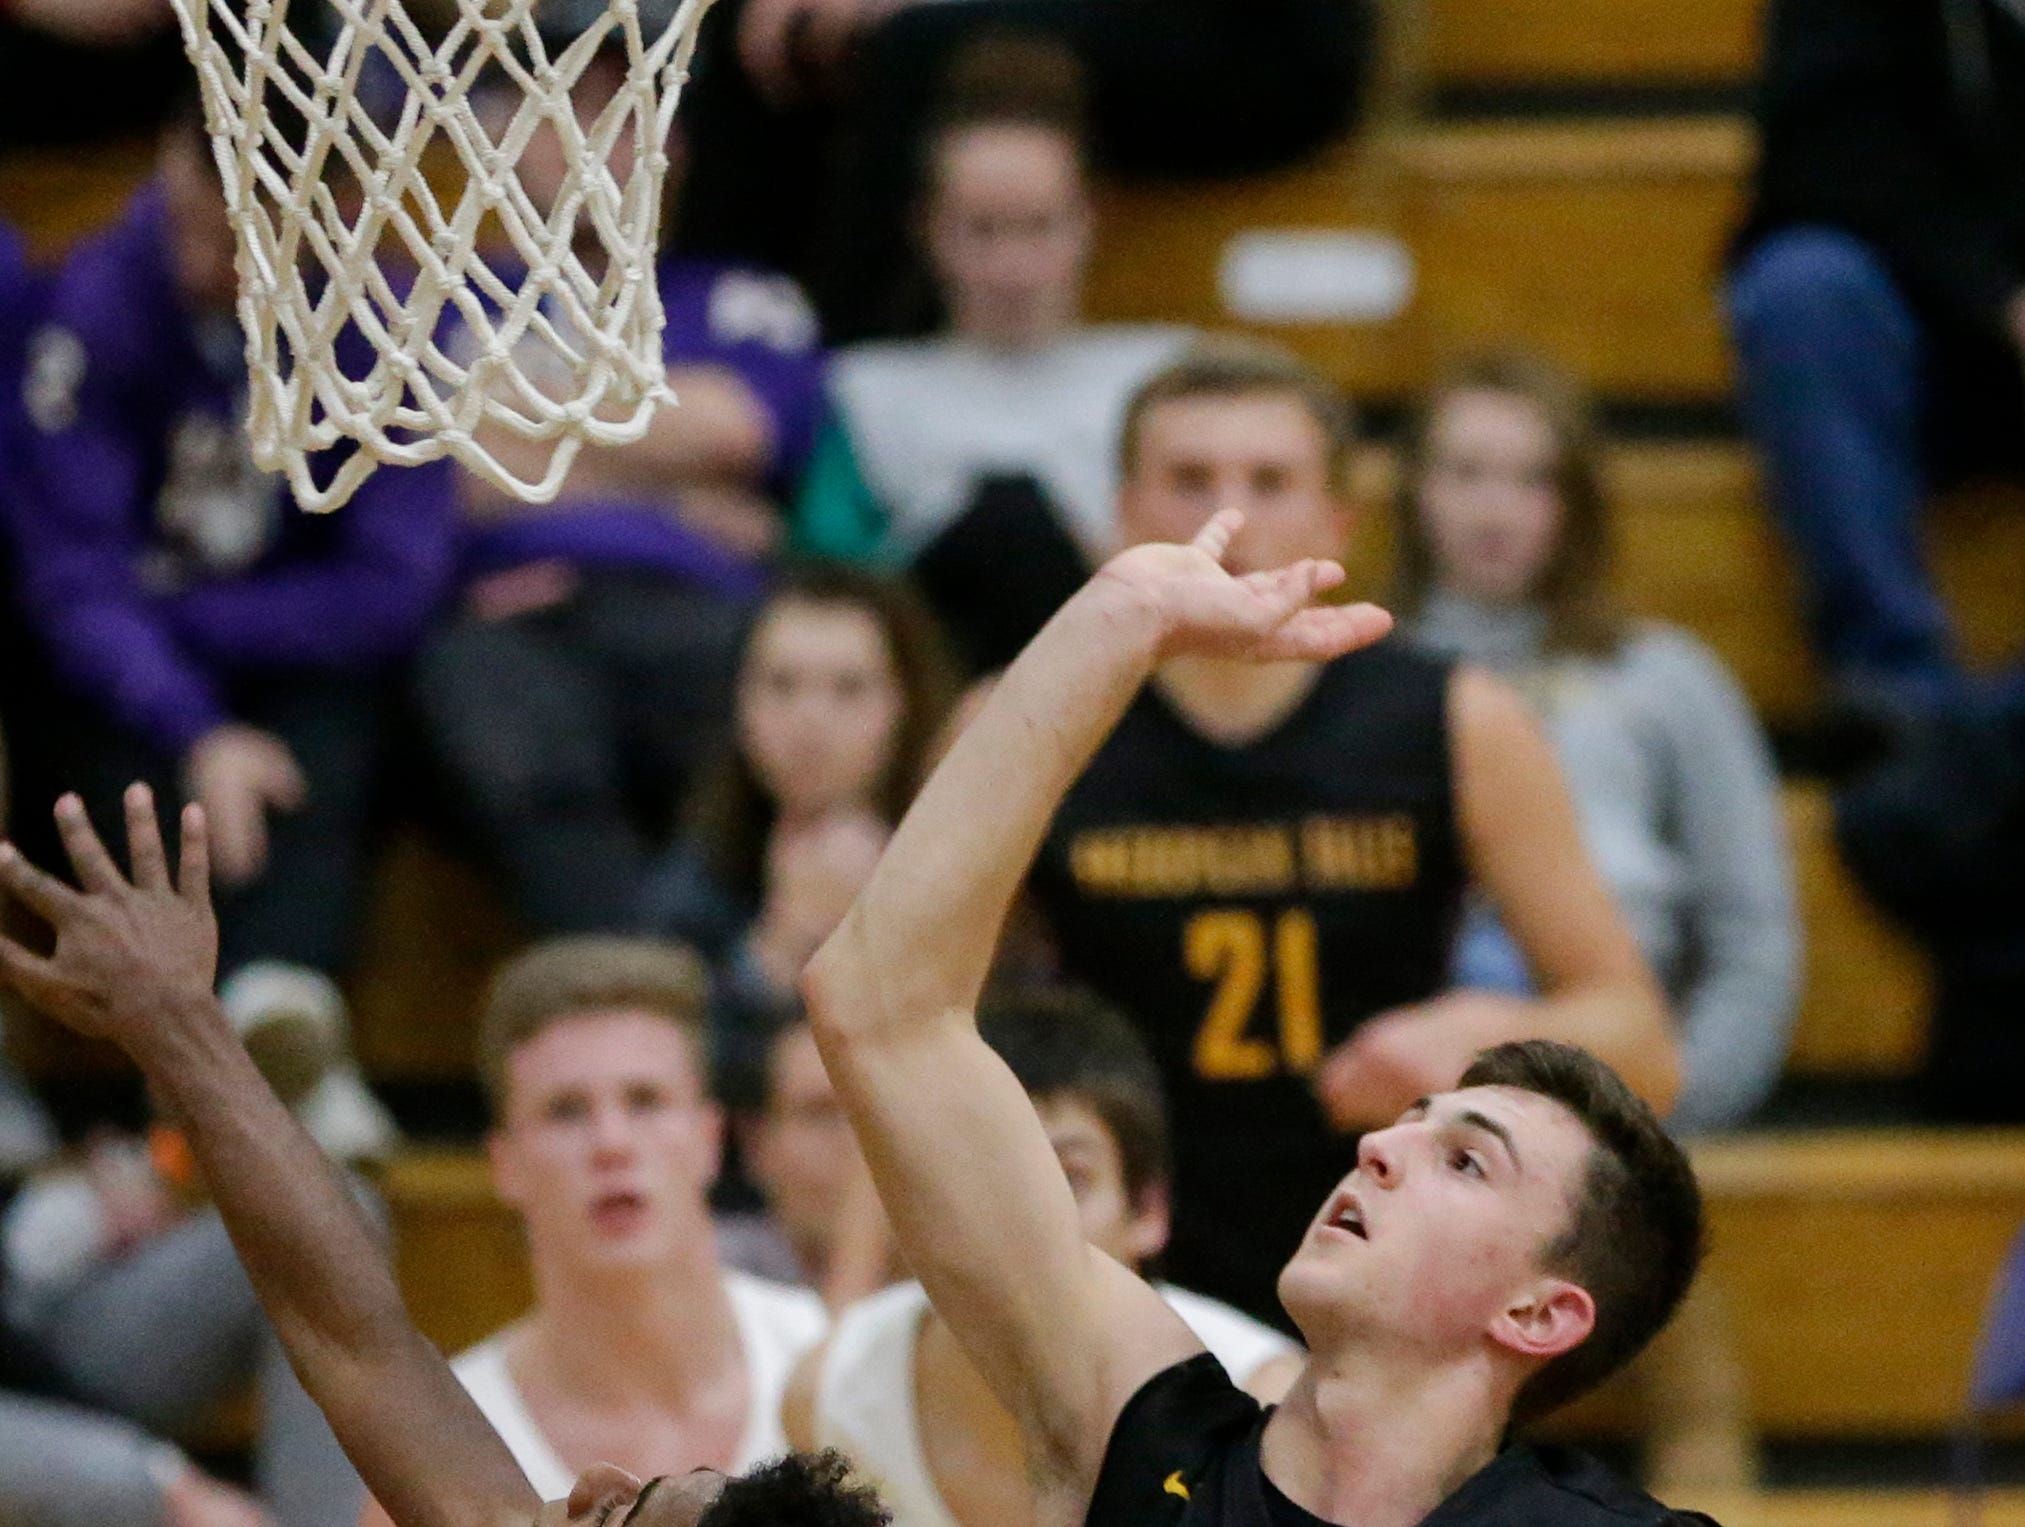 Sheboygan Falls' Justin Tenpas shoots a layup against Two Rivers during an Eastern Wisconsin Conference game at Two Rivers High School Tuesday, December 4, 2018, in Two Rivers, Wis. Joshua Clark/USA TODAY NETWORK-Wisconsin